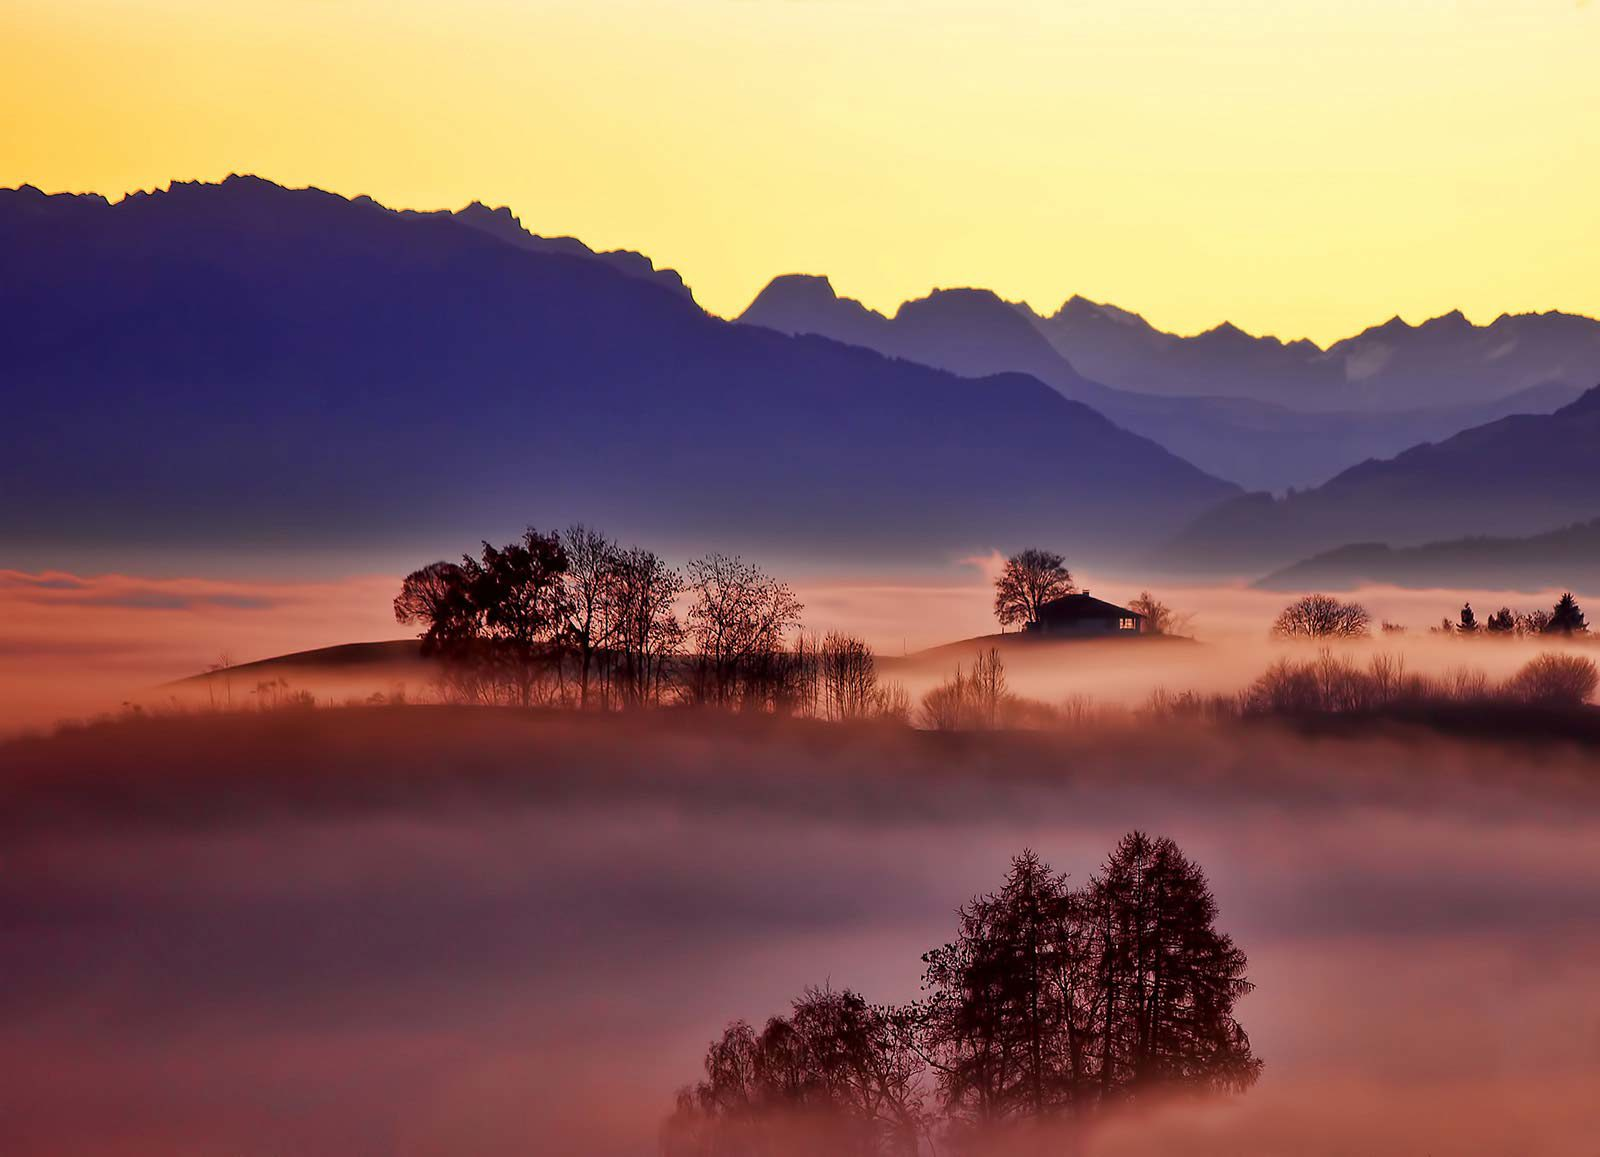 View of mountains and trees in fog with house in distance.